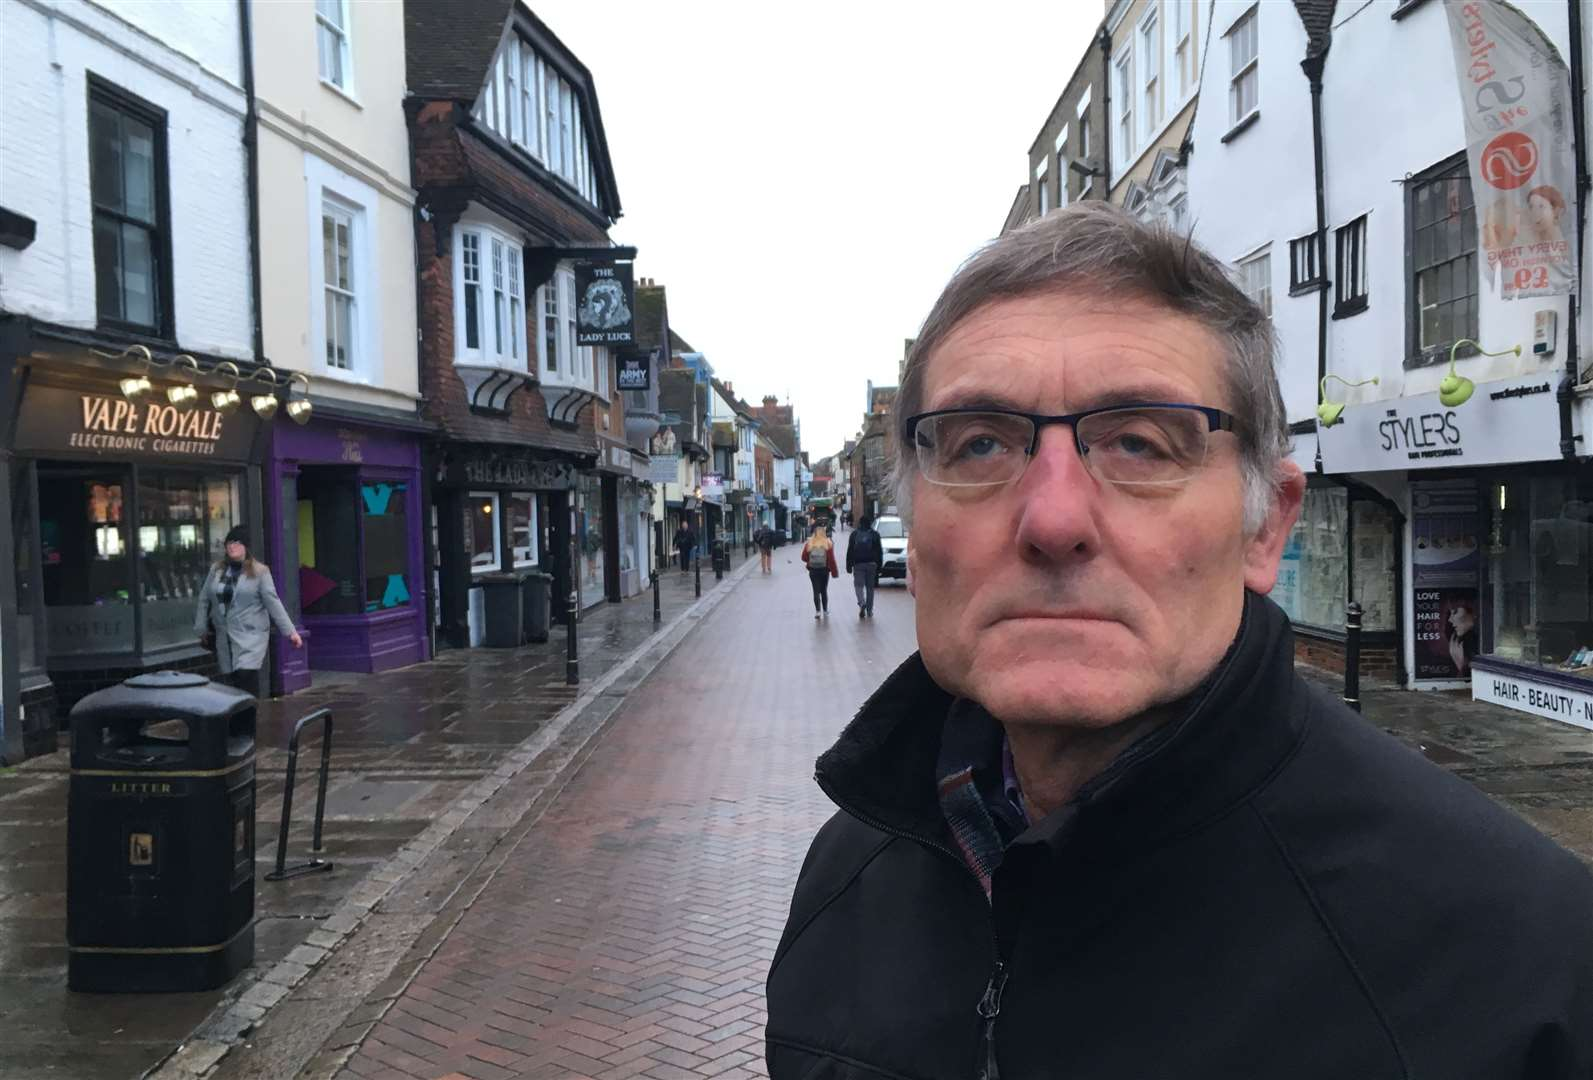 Cllr Alan Baldock hopes the plans will boost local jobs